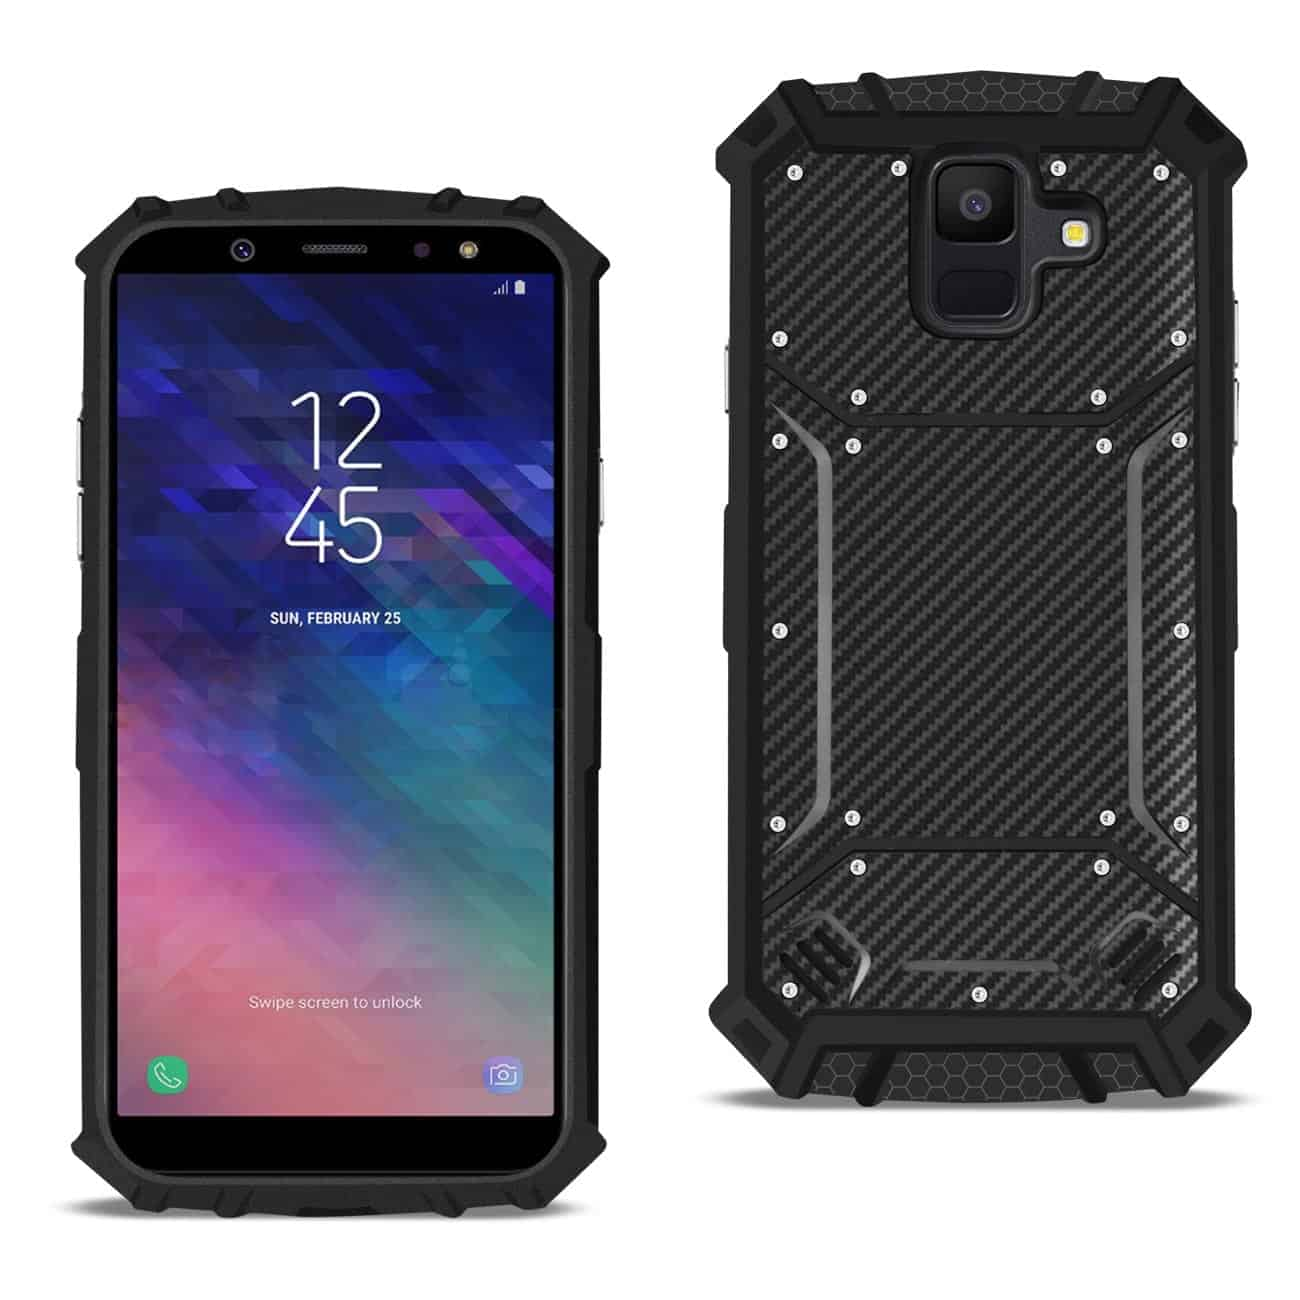 Samsung Galaxy A6 Carbon Fiber Hard-shell Case In Black